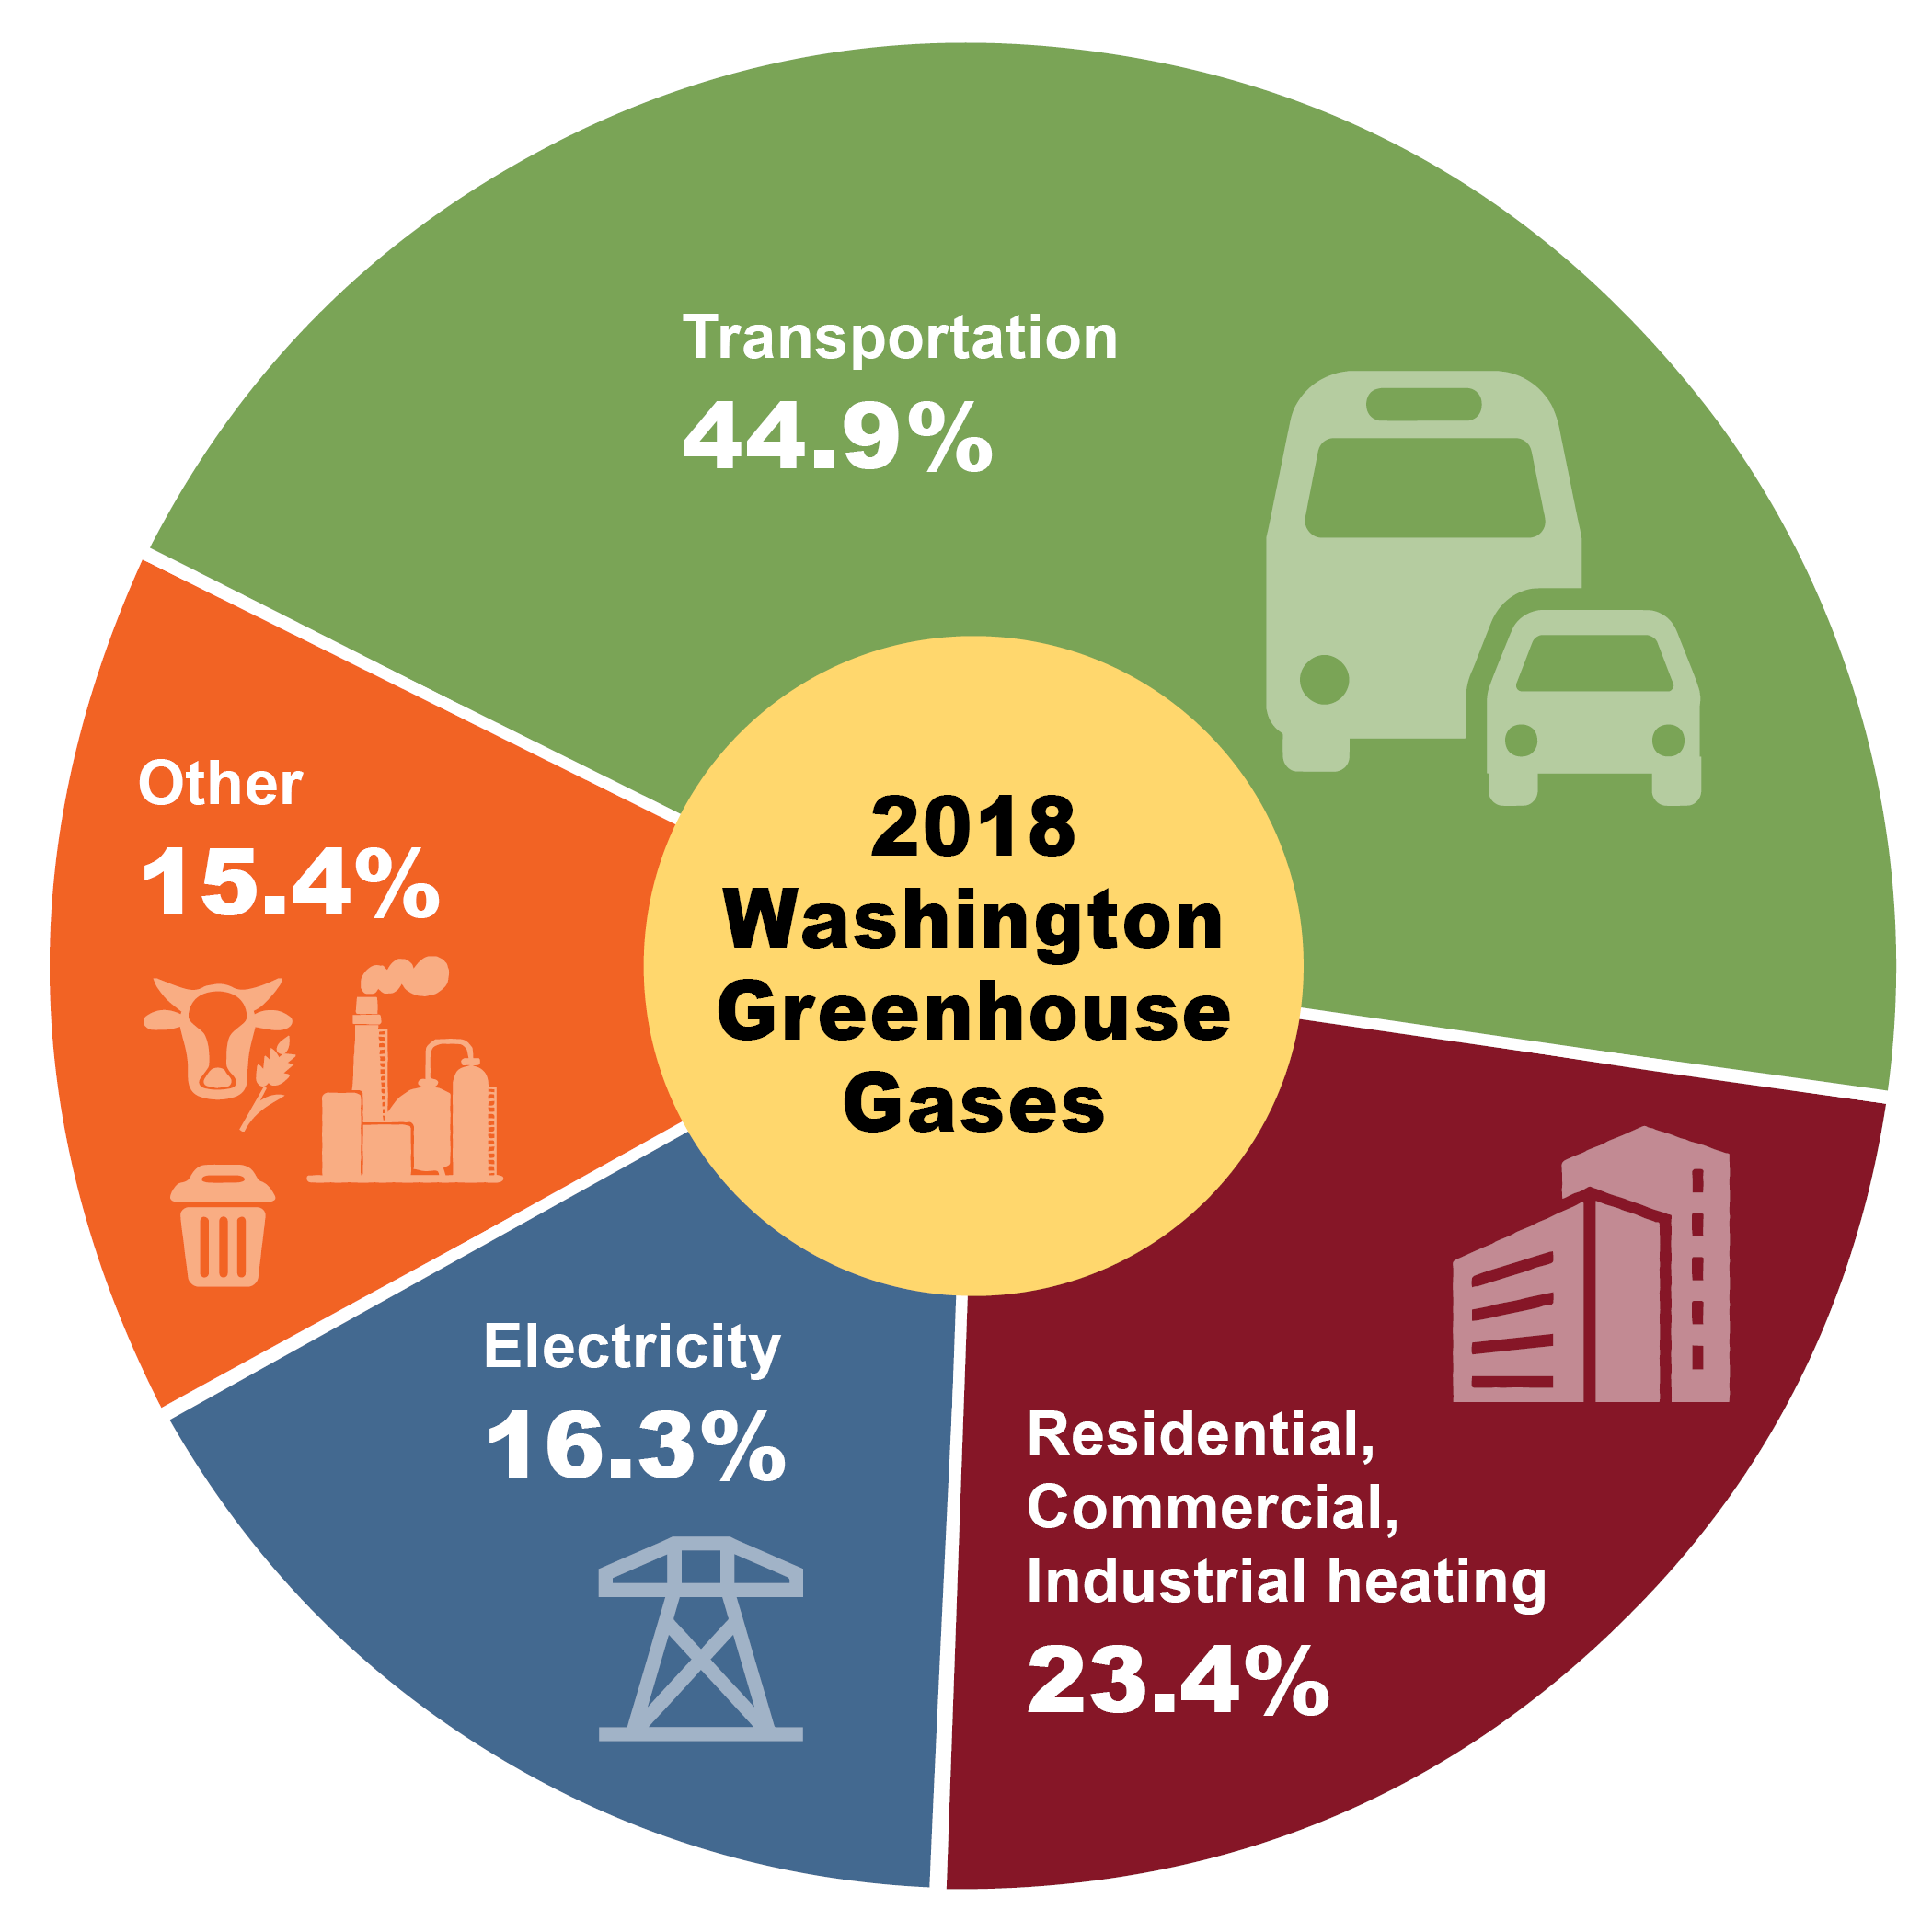 A pie chart showing the largest sources of emissions in Washington, led by transportation with 44.9%.